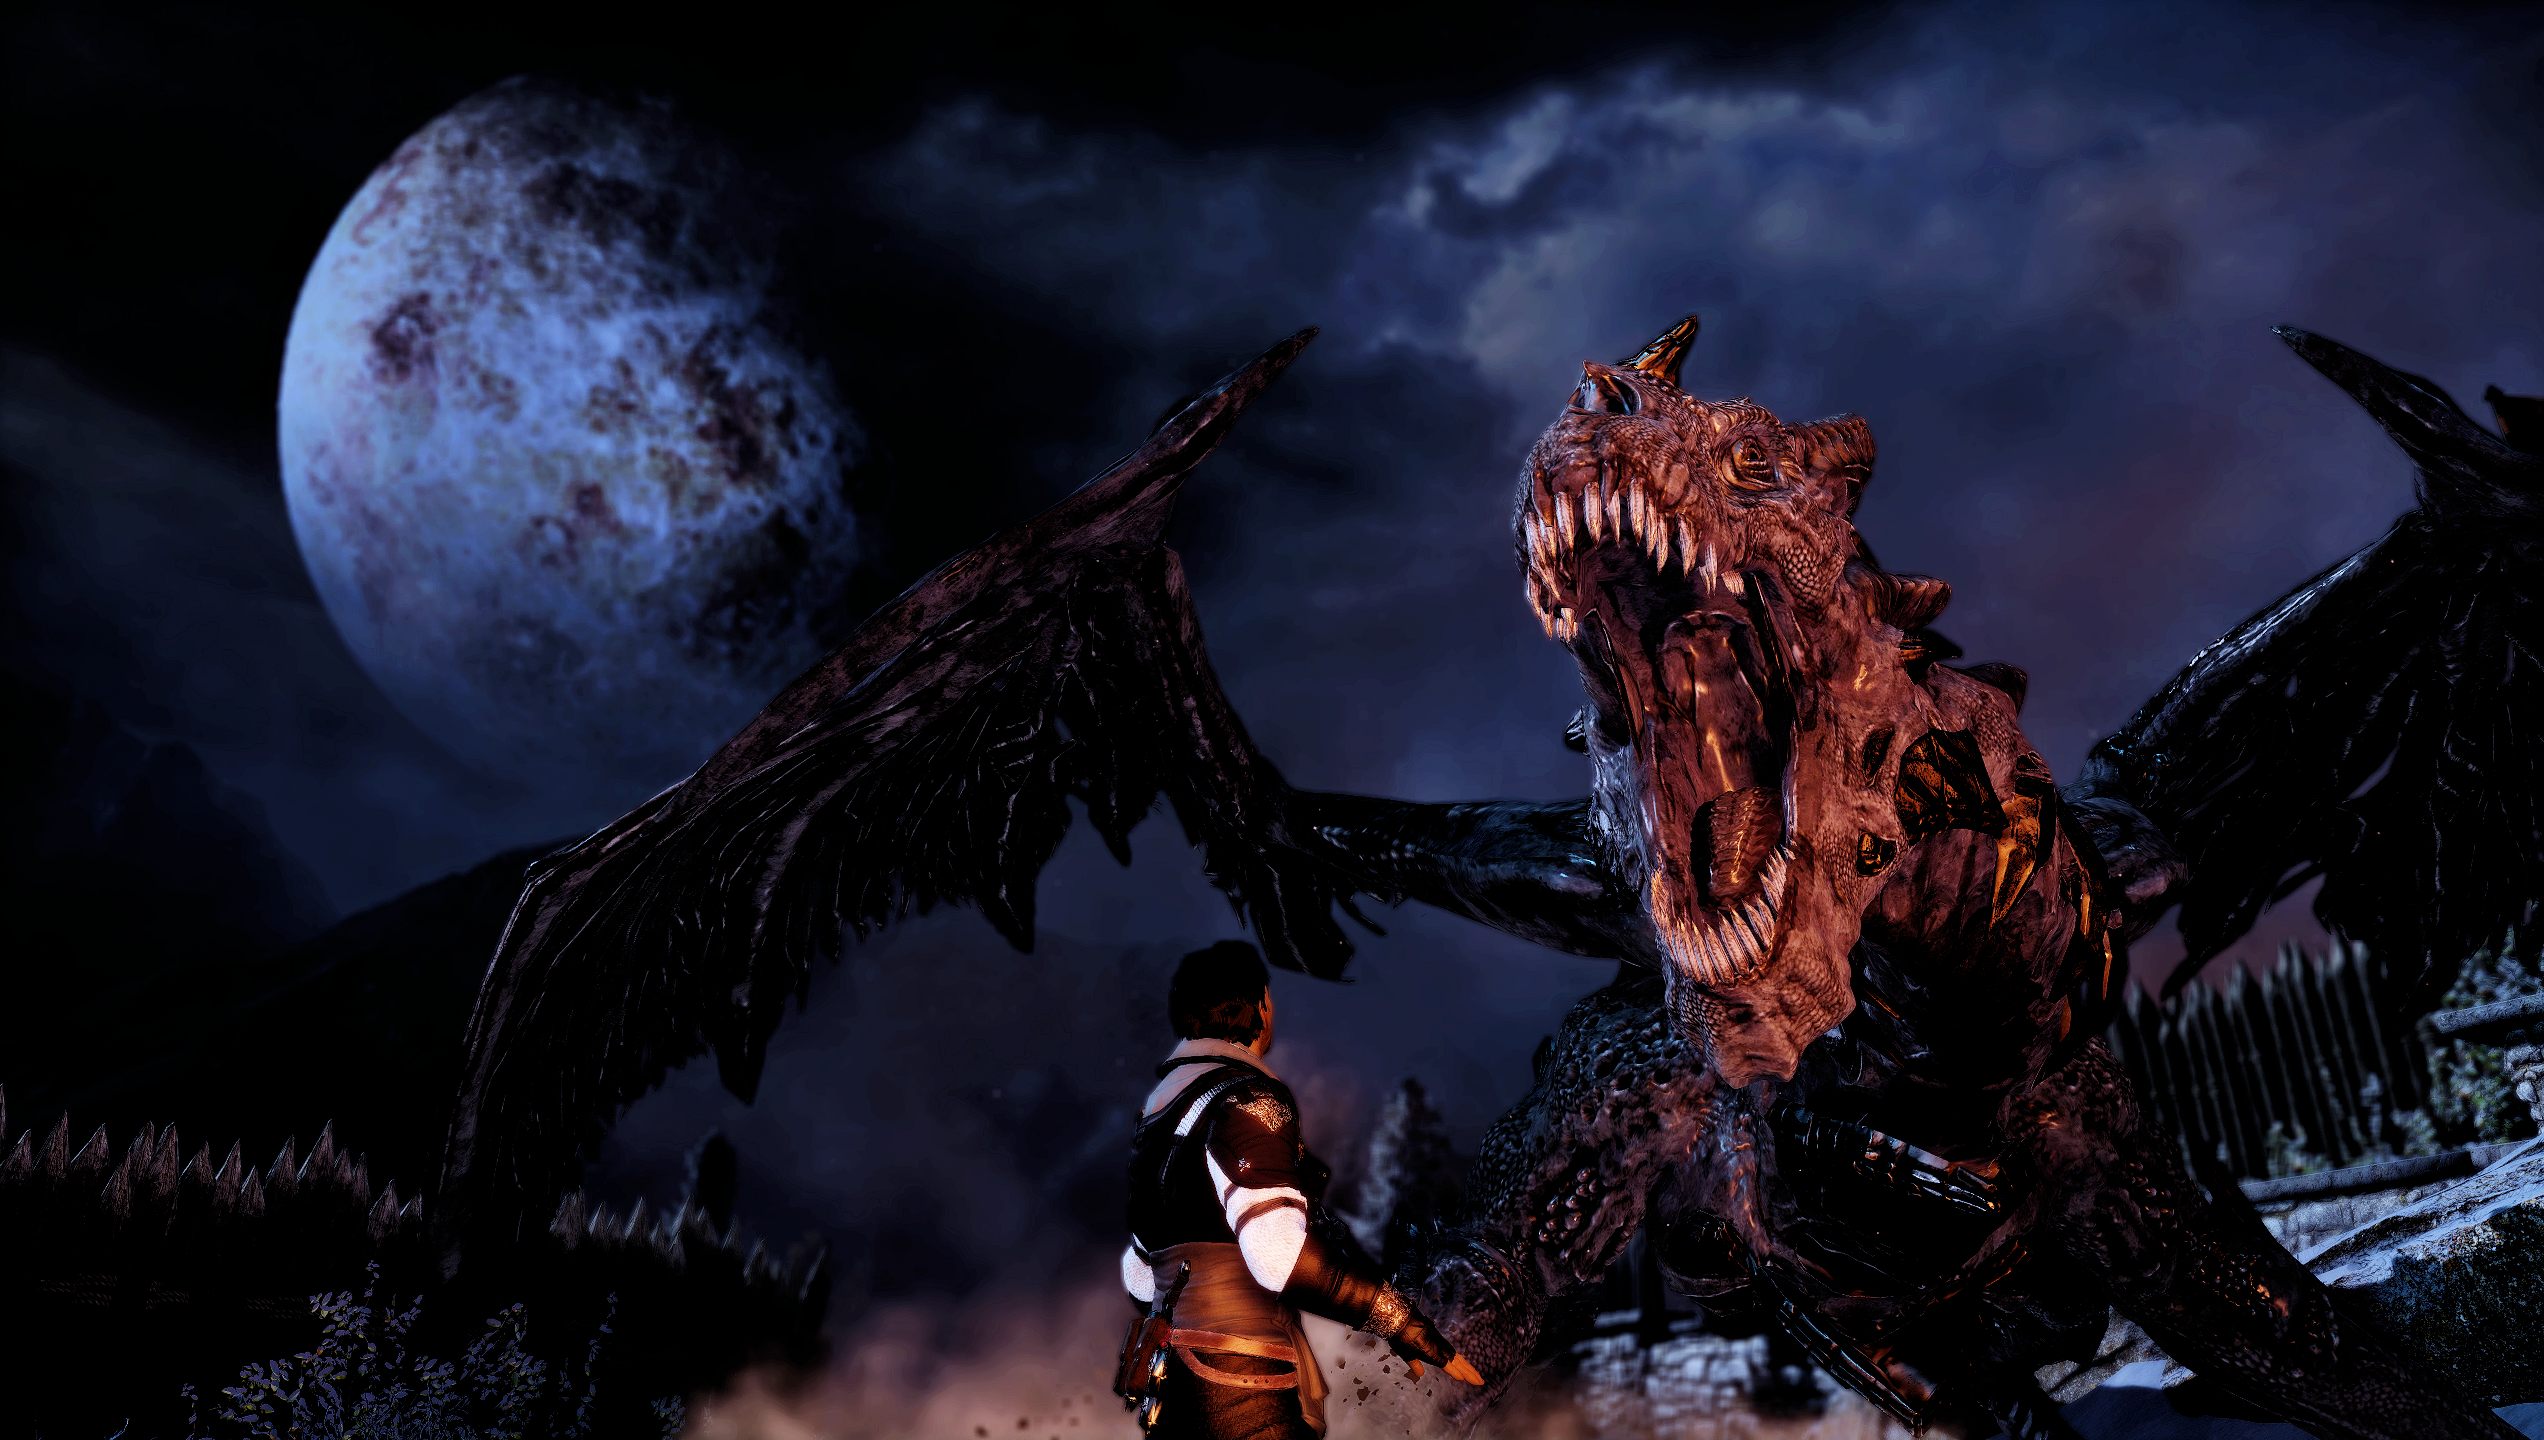 Dragon Age 2 (2011): Carver Hawke, A Character Analysis